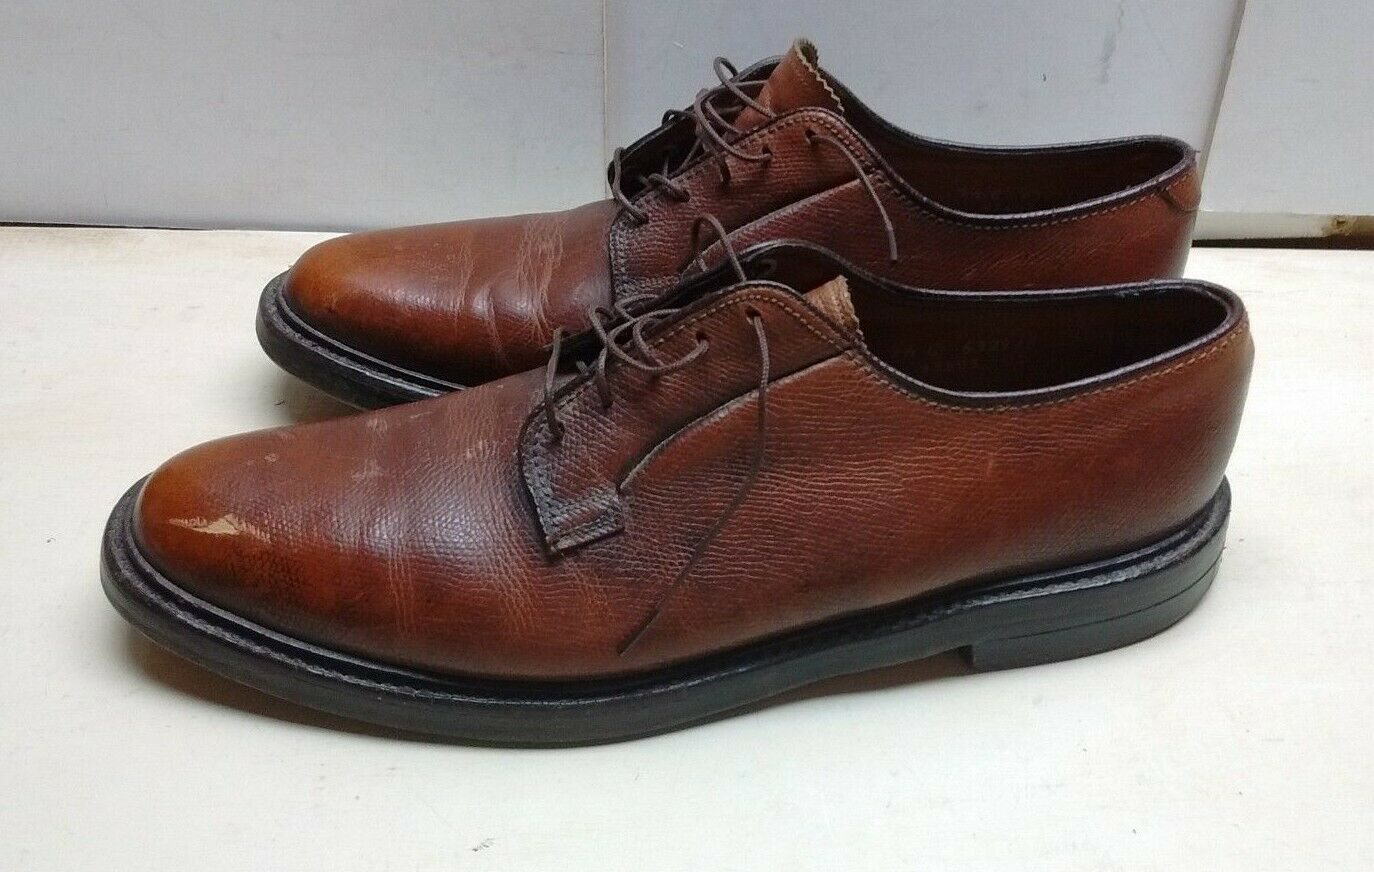 The Florsheim Imperial Men's Marroneee Pebbled Leather Oxfords Plain Toe scarpe  9.5C